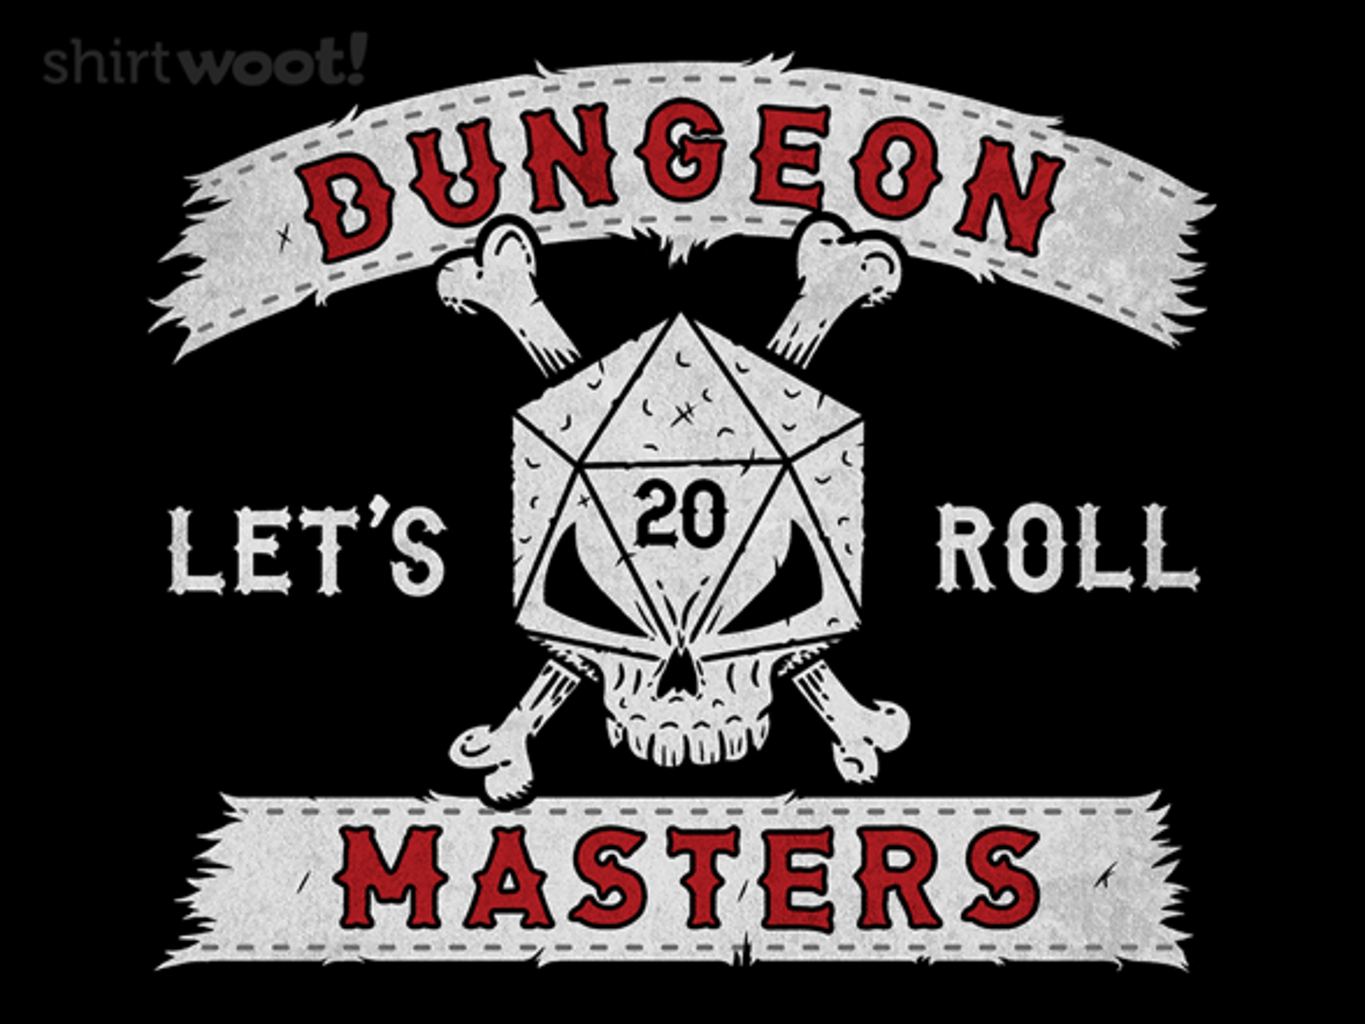 Woot!: Dungeon Masters